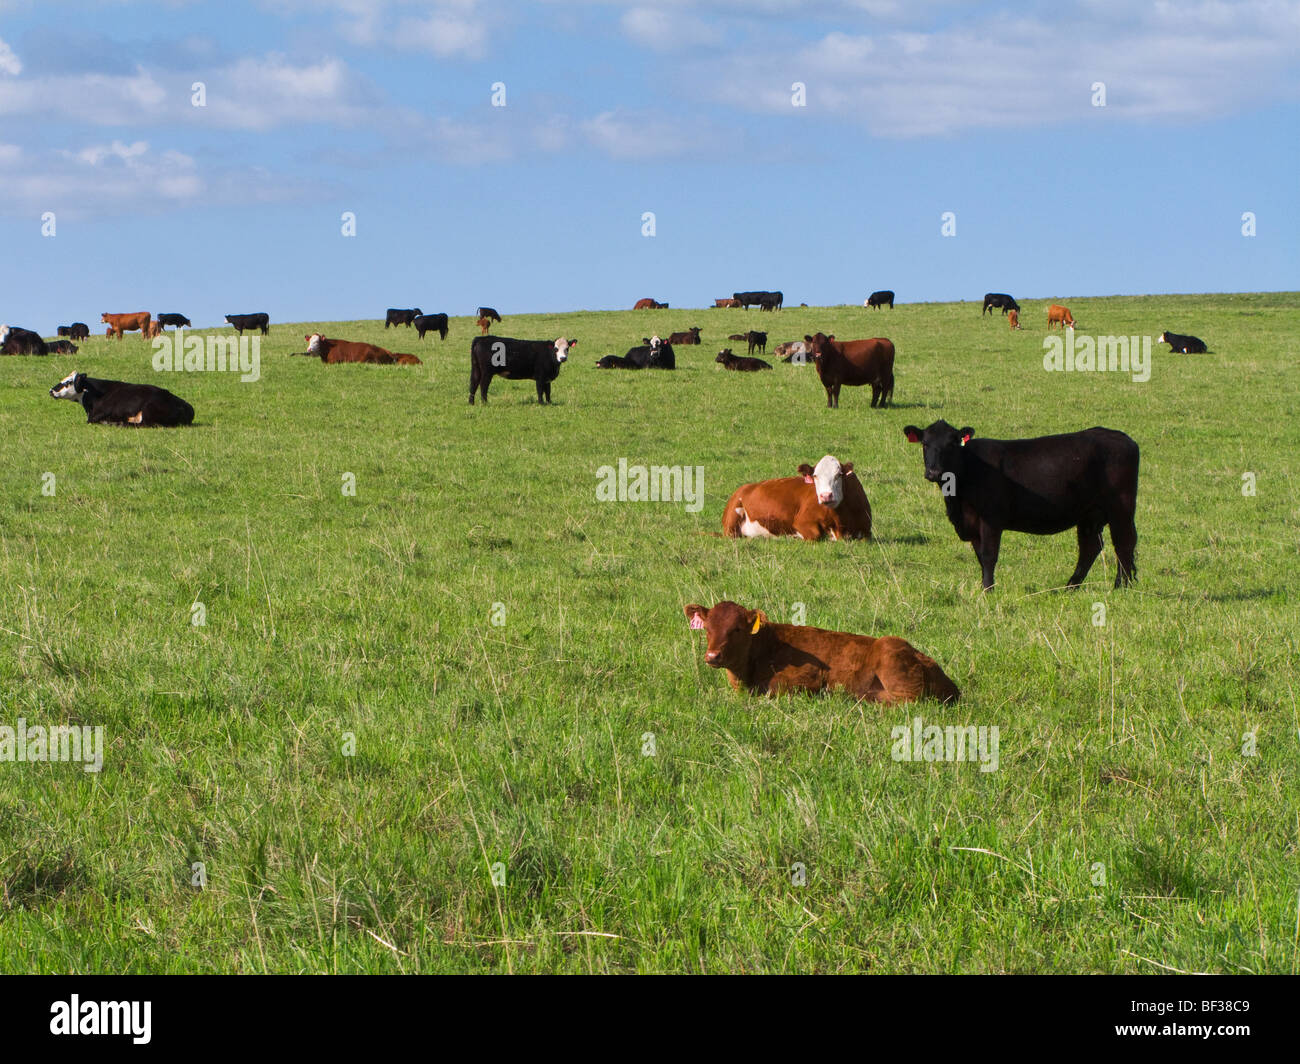 Livestock - Mixed breeds of beef cattle resting on a green pasture / Alberta, Canada. - Stock Image